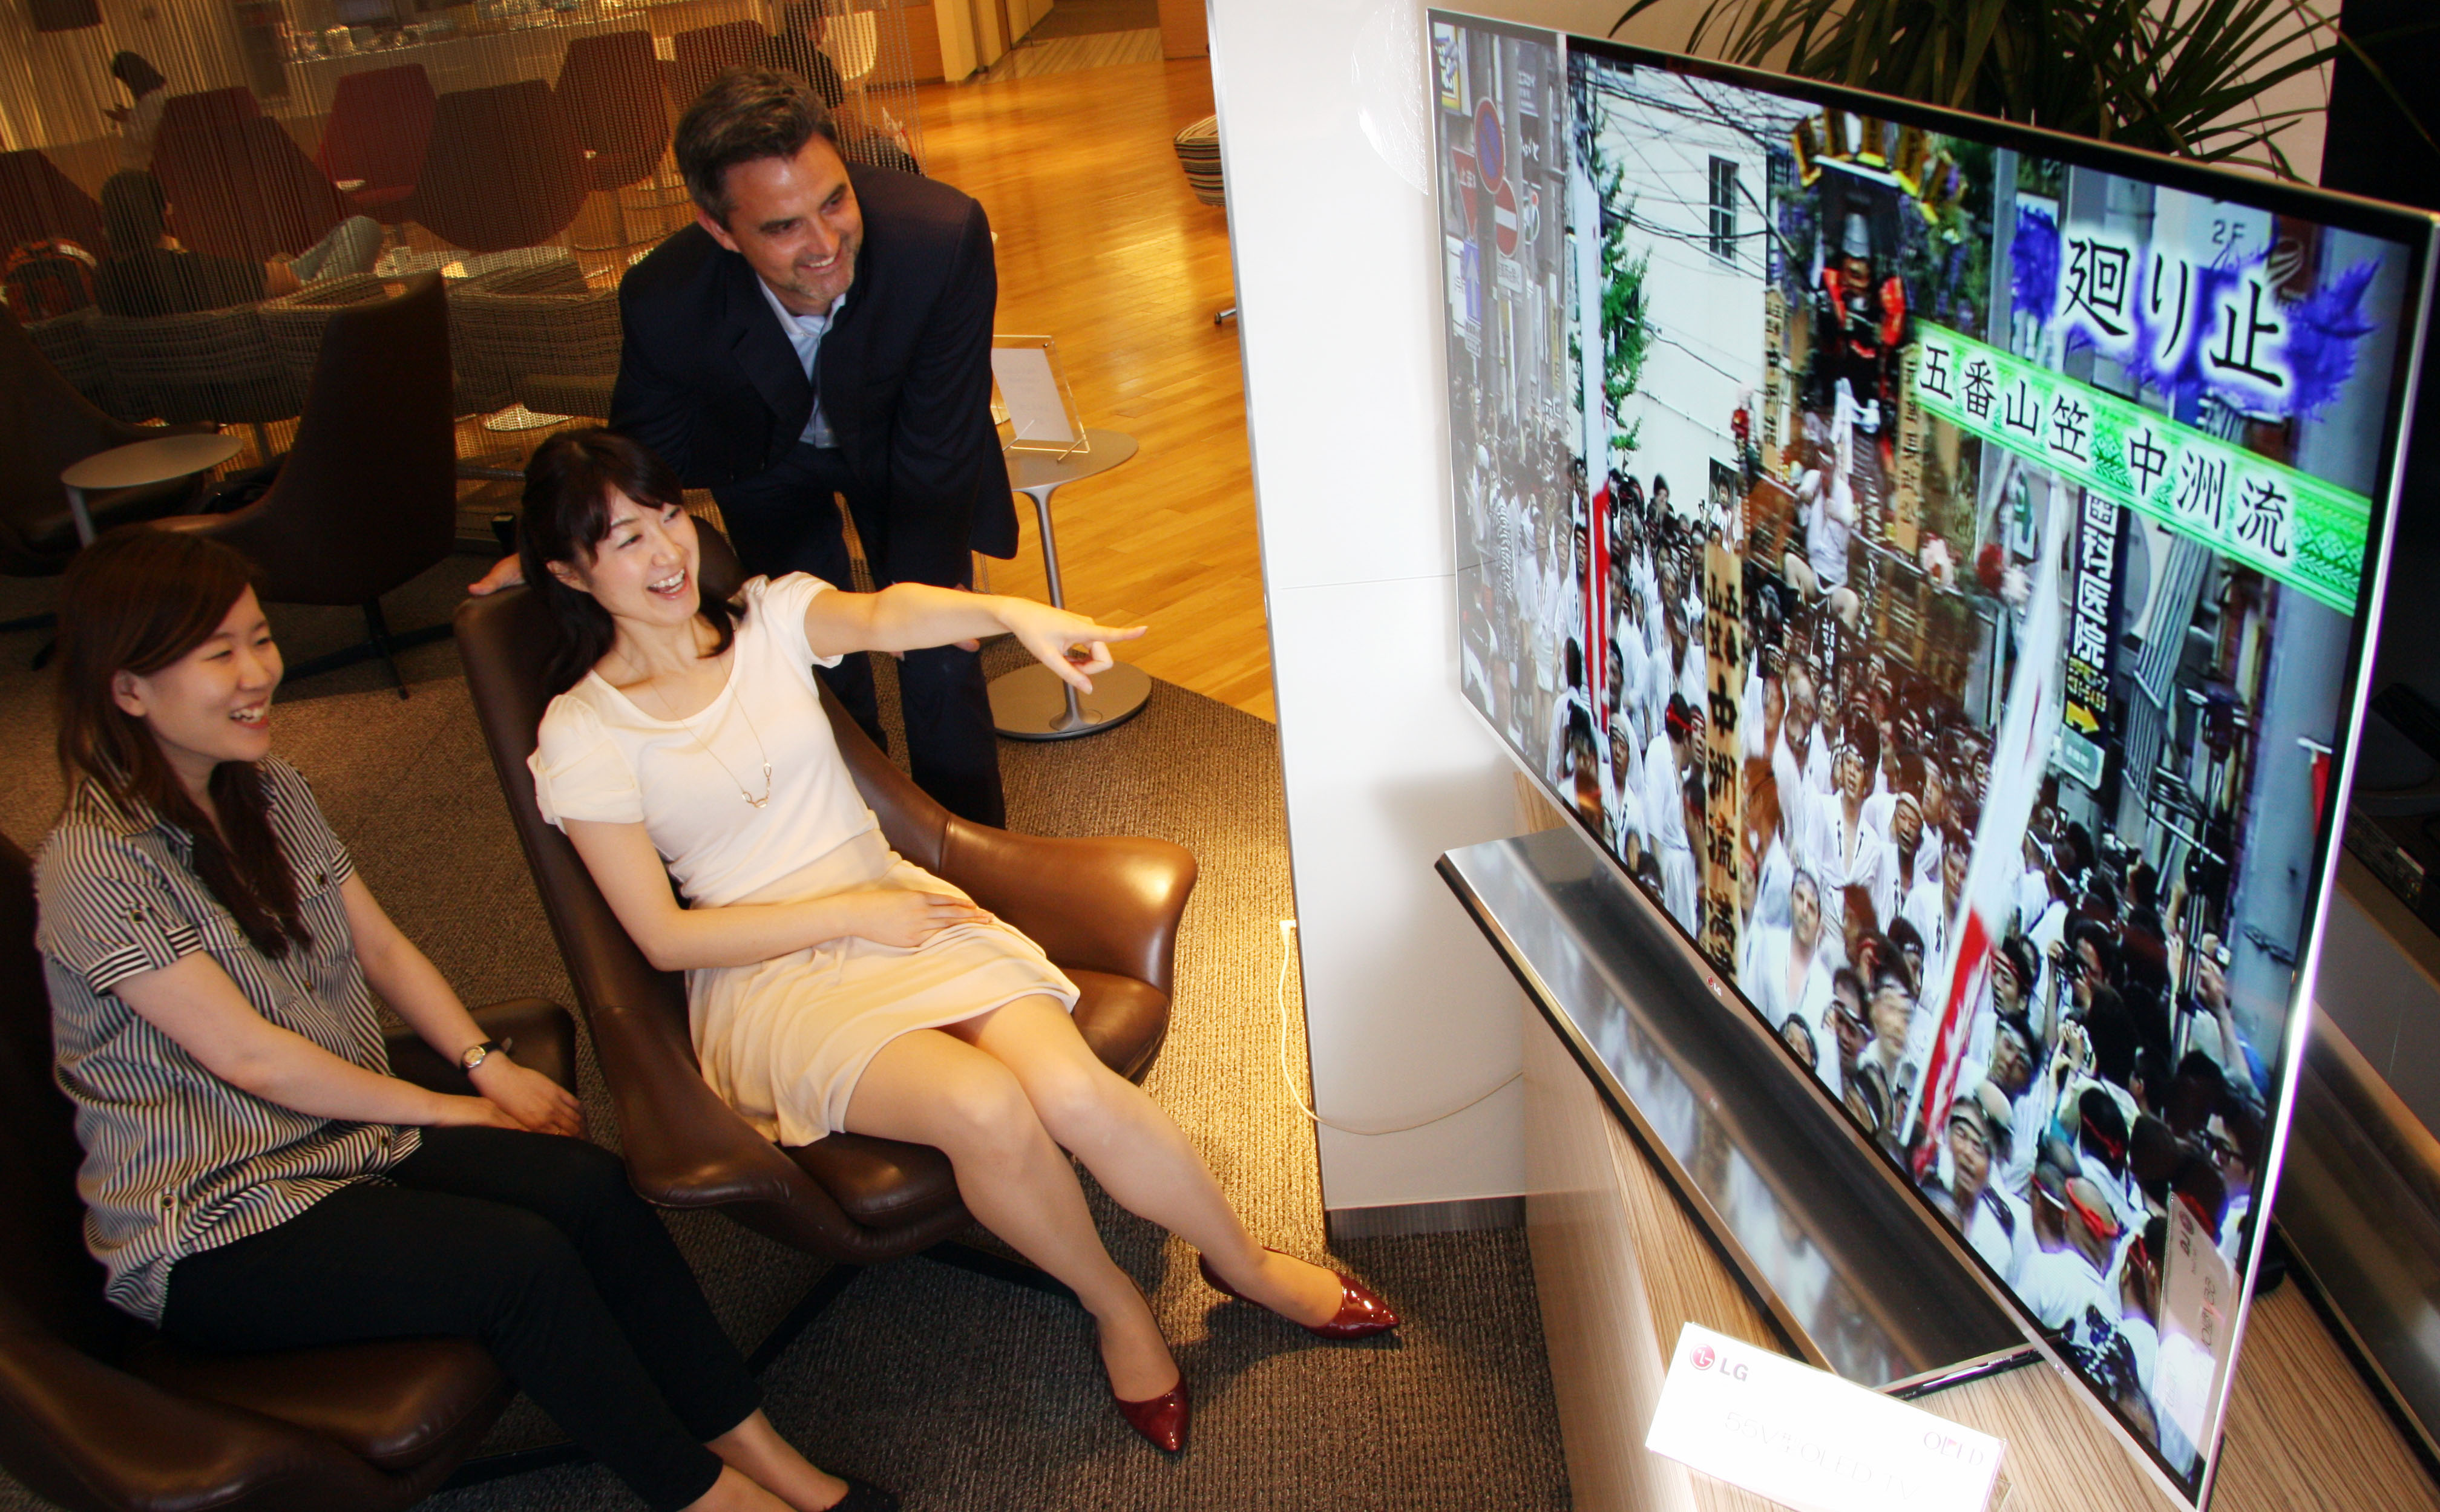 Three travelers enjoy the LG 55-inch OLED TV's incredible display in an airport lounge